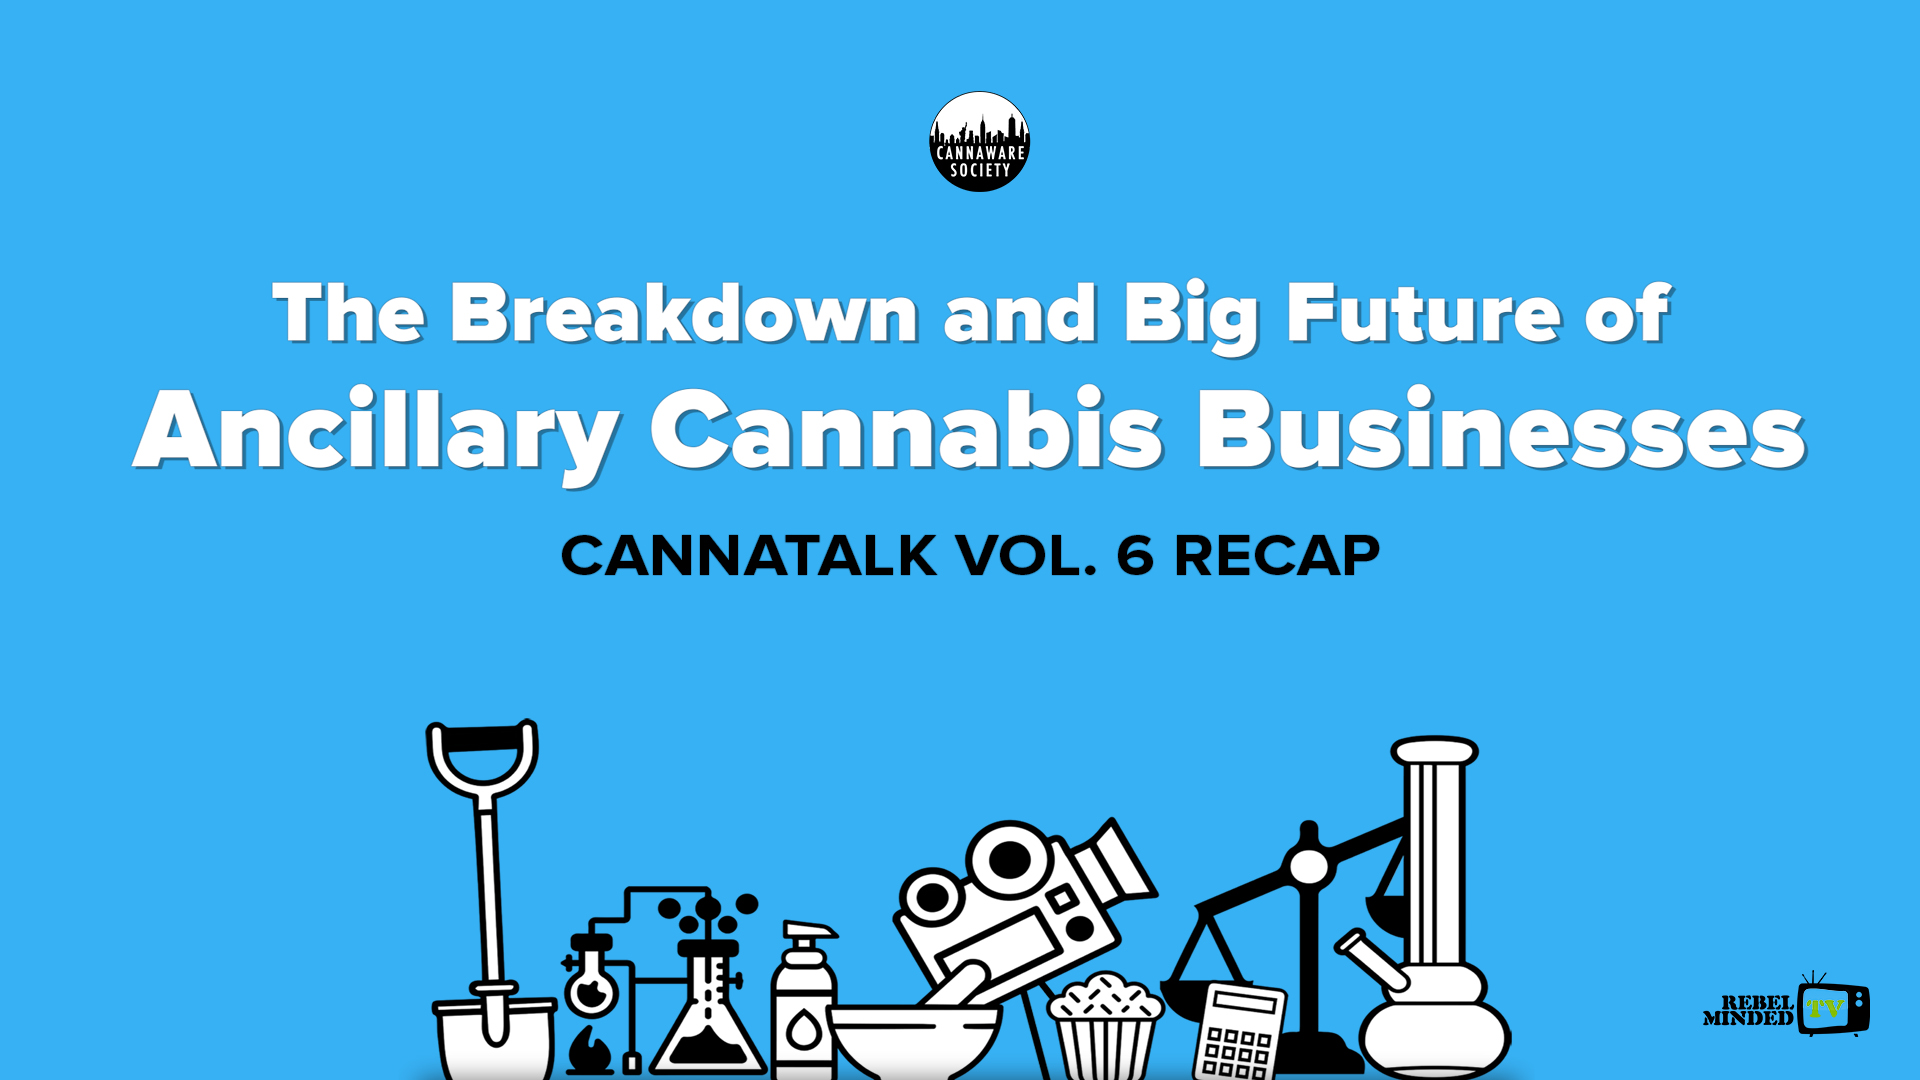 Cannatalk Vol. 6: The Breakdown and Big Future of Ancillary Cannabis Businesses